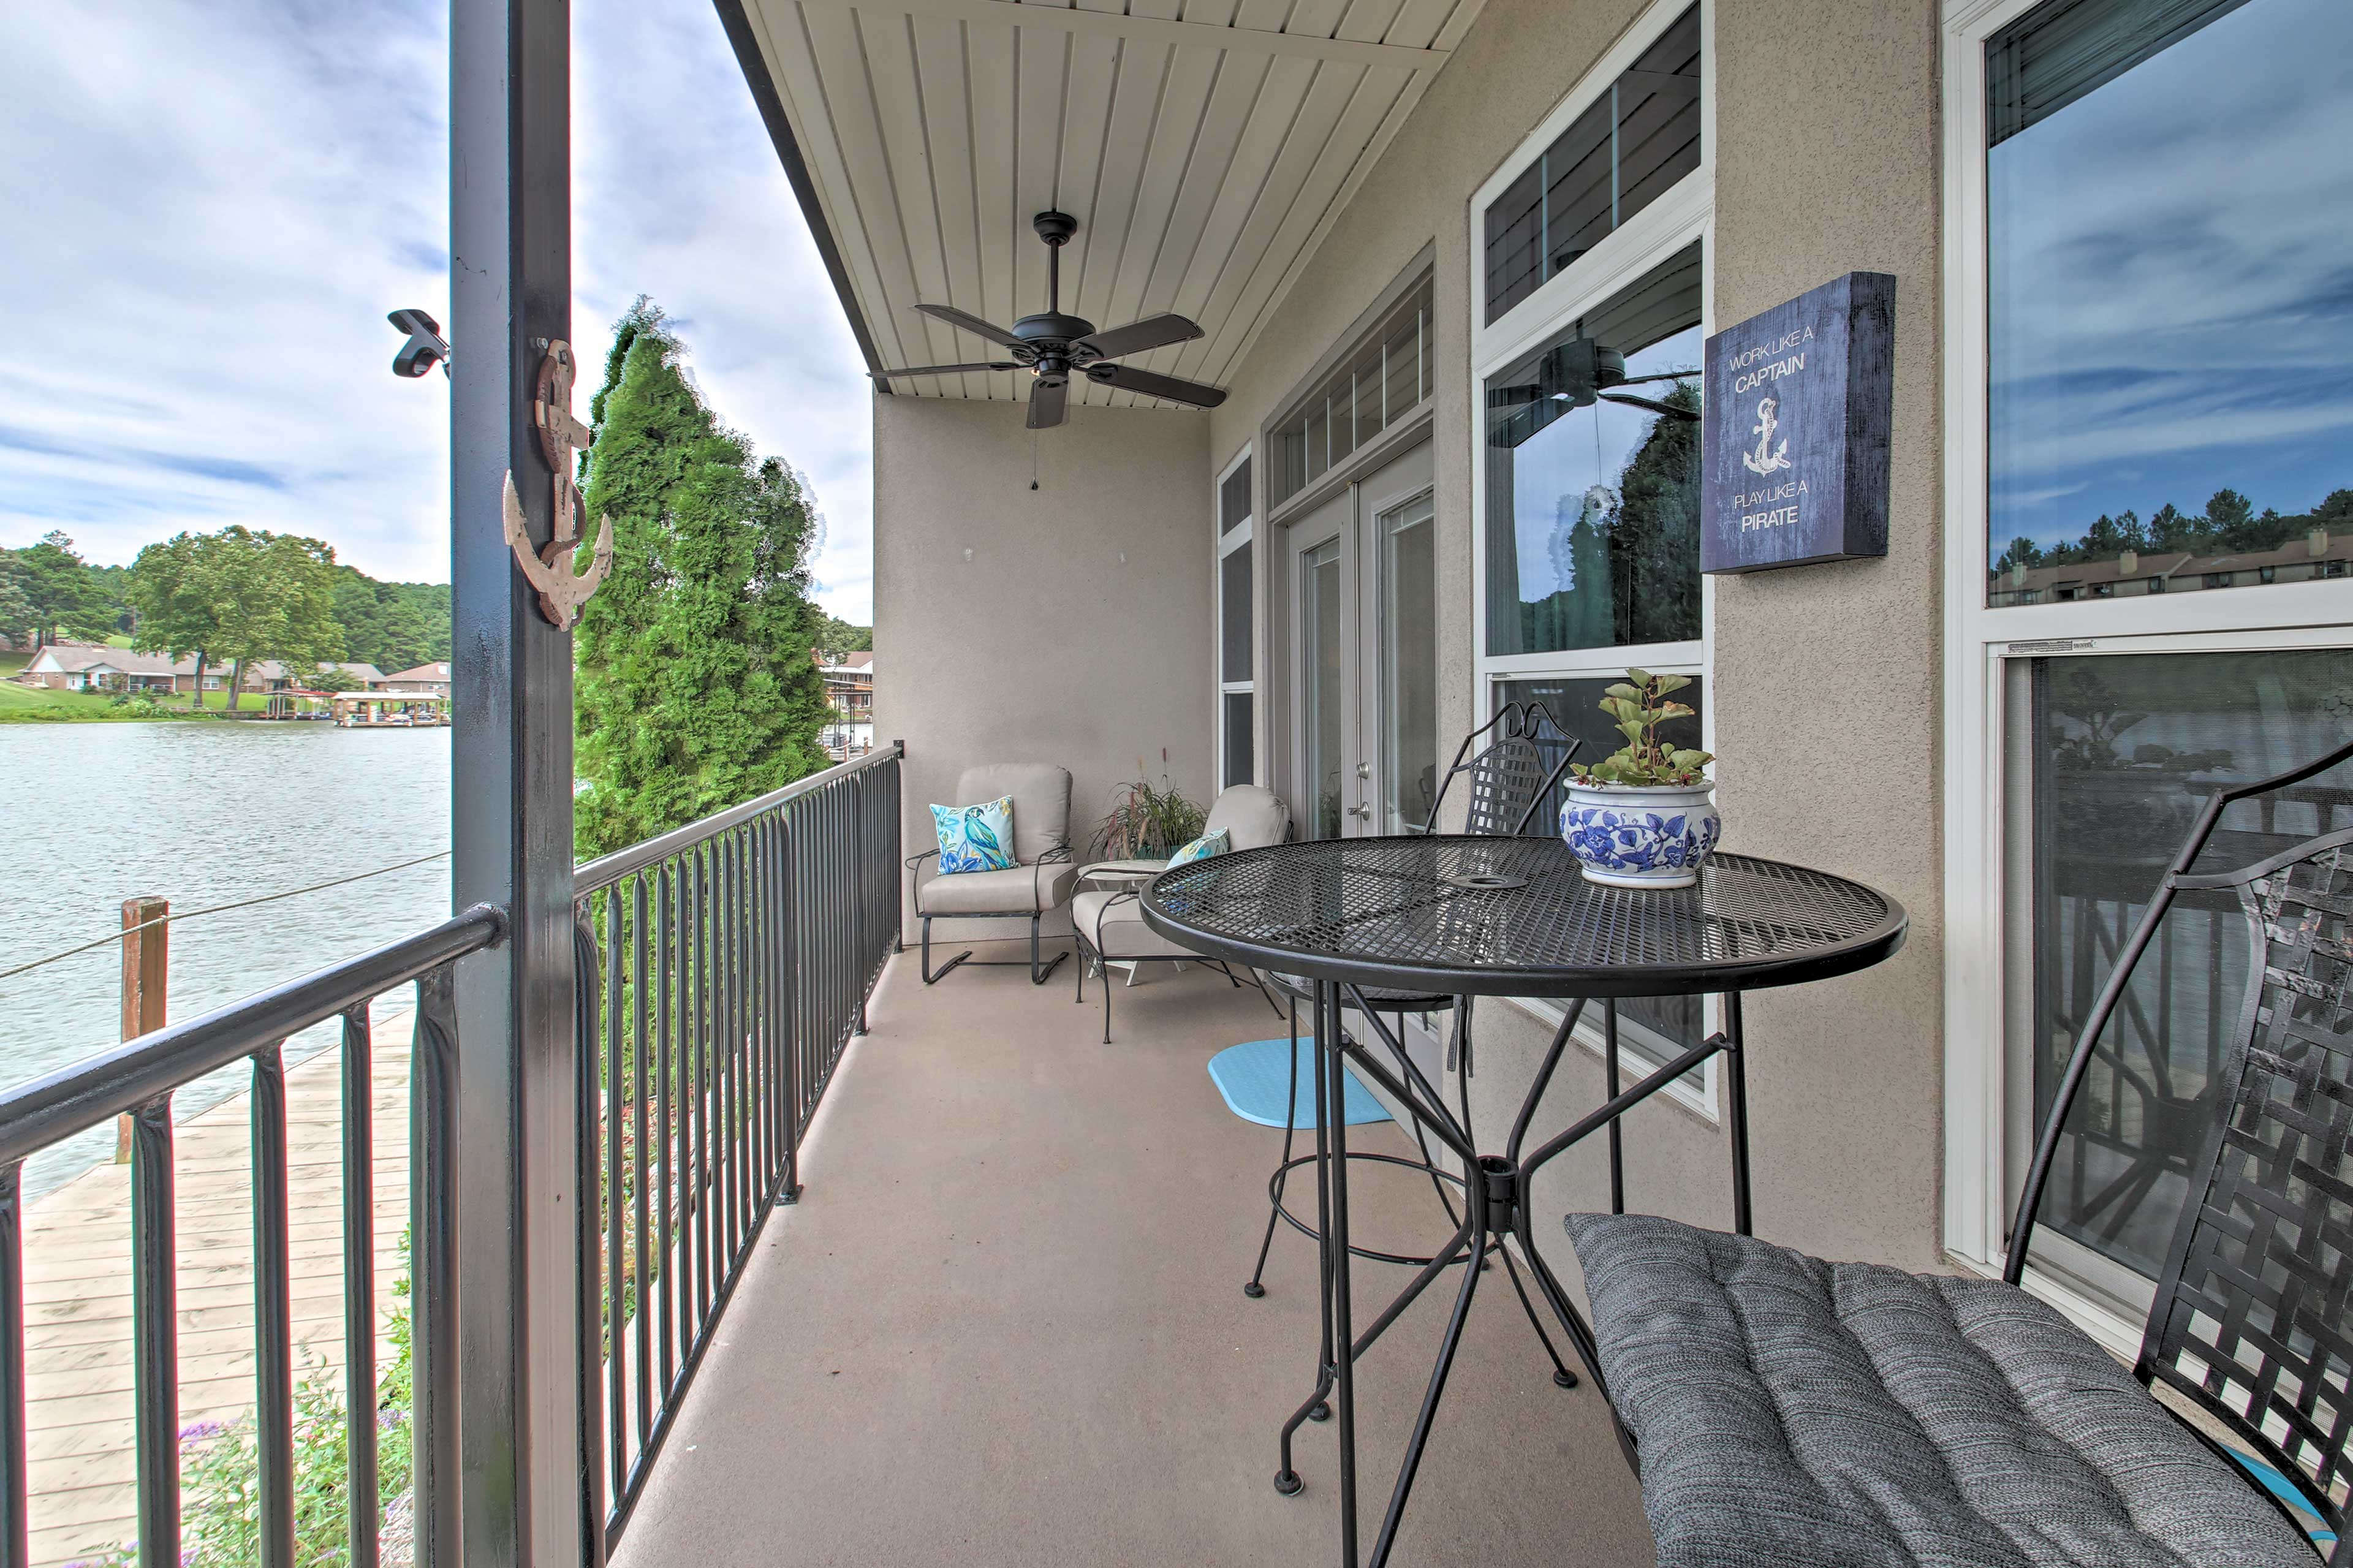 Bring meals to dine al fresco on the balcony.